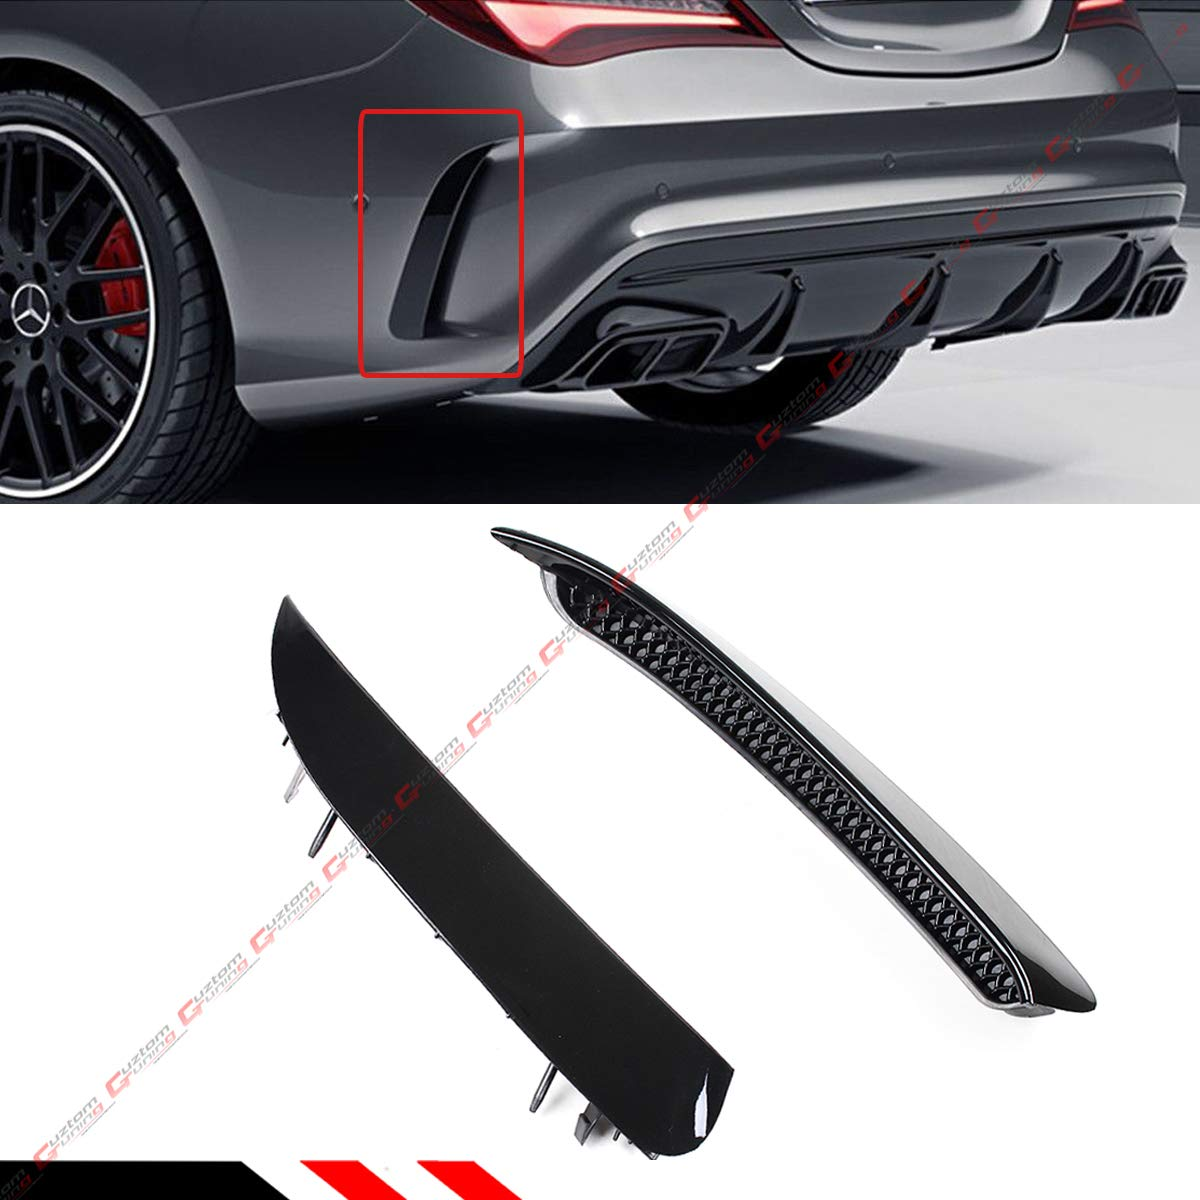 FOR 2014-2018 MERCEDES BENZ W117 CLA45 CLA250 AMG GLOSS BLACK REAR BUMPER SIDE VENT CANARD INSERT Cuztom_Tuning